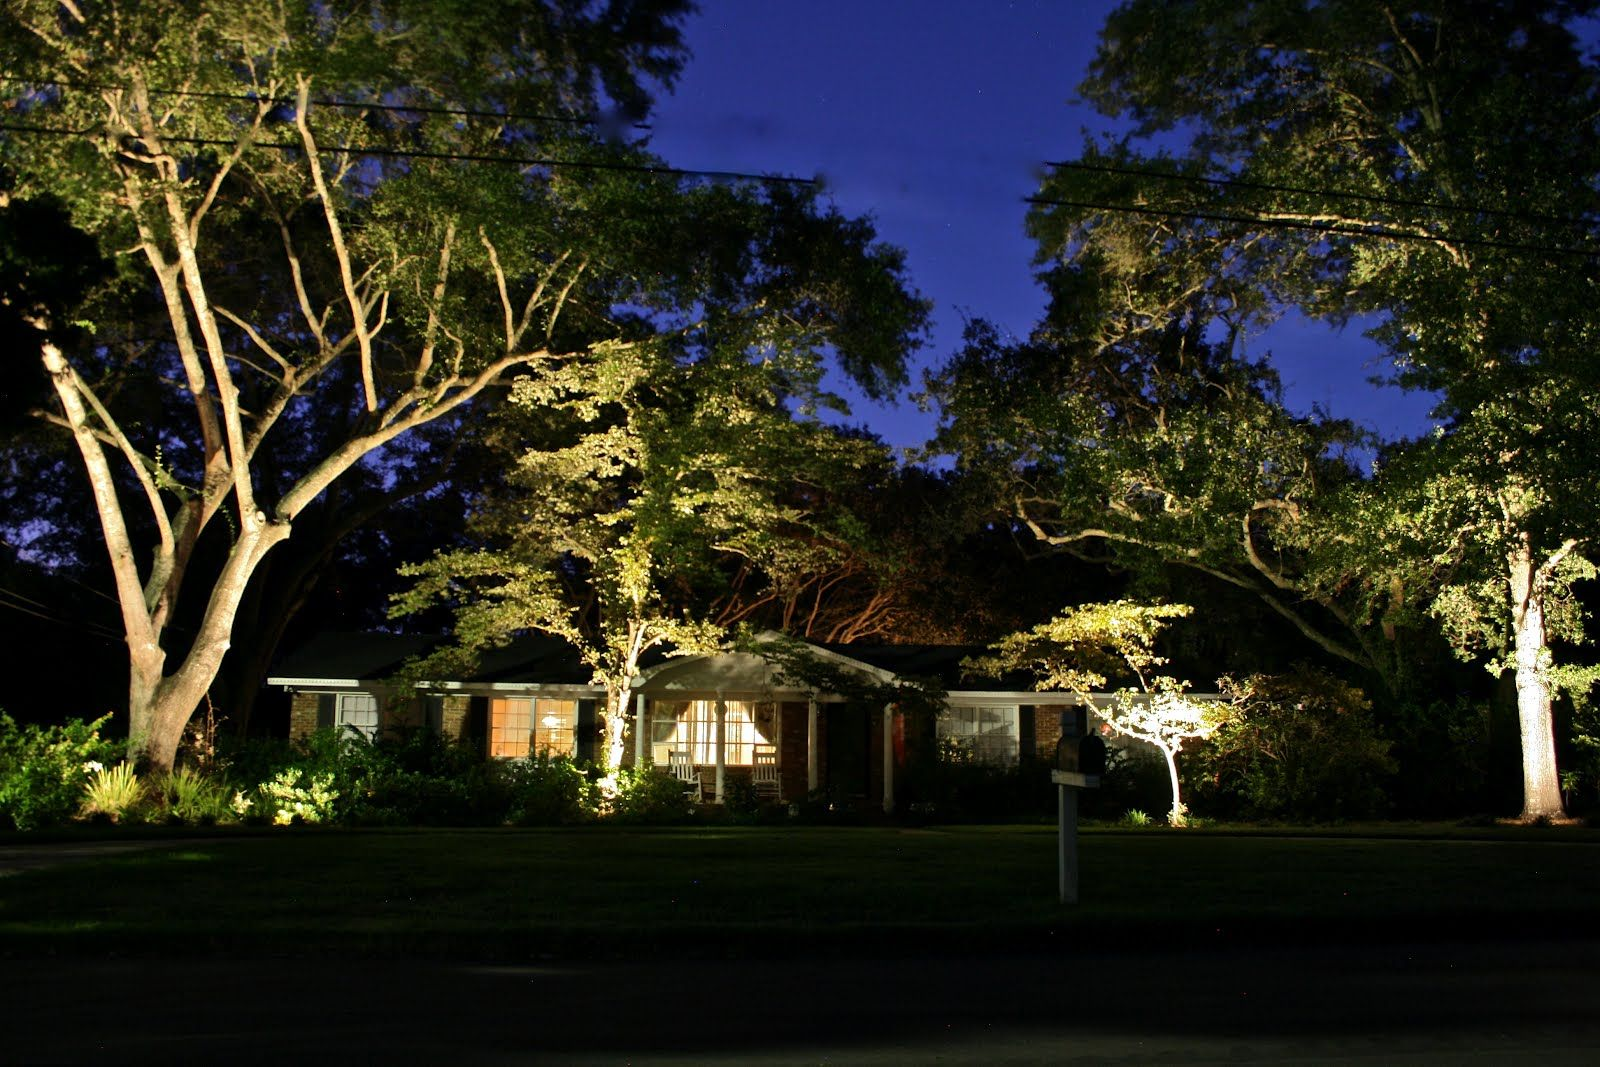 Landscape landscape lighting behind the house at night with low landscape landscape lighting behind the house at night with low voltage led lights are very mozeypictures Image collections